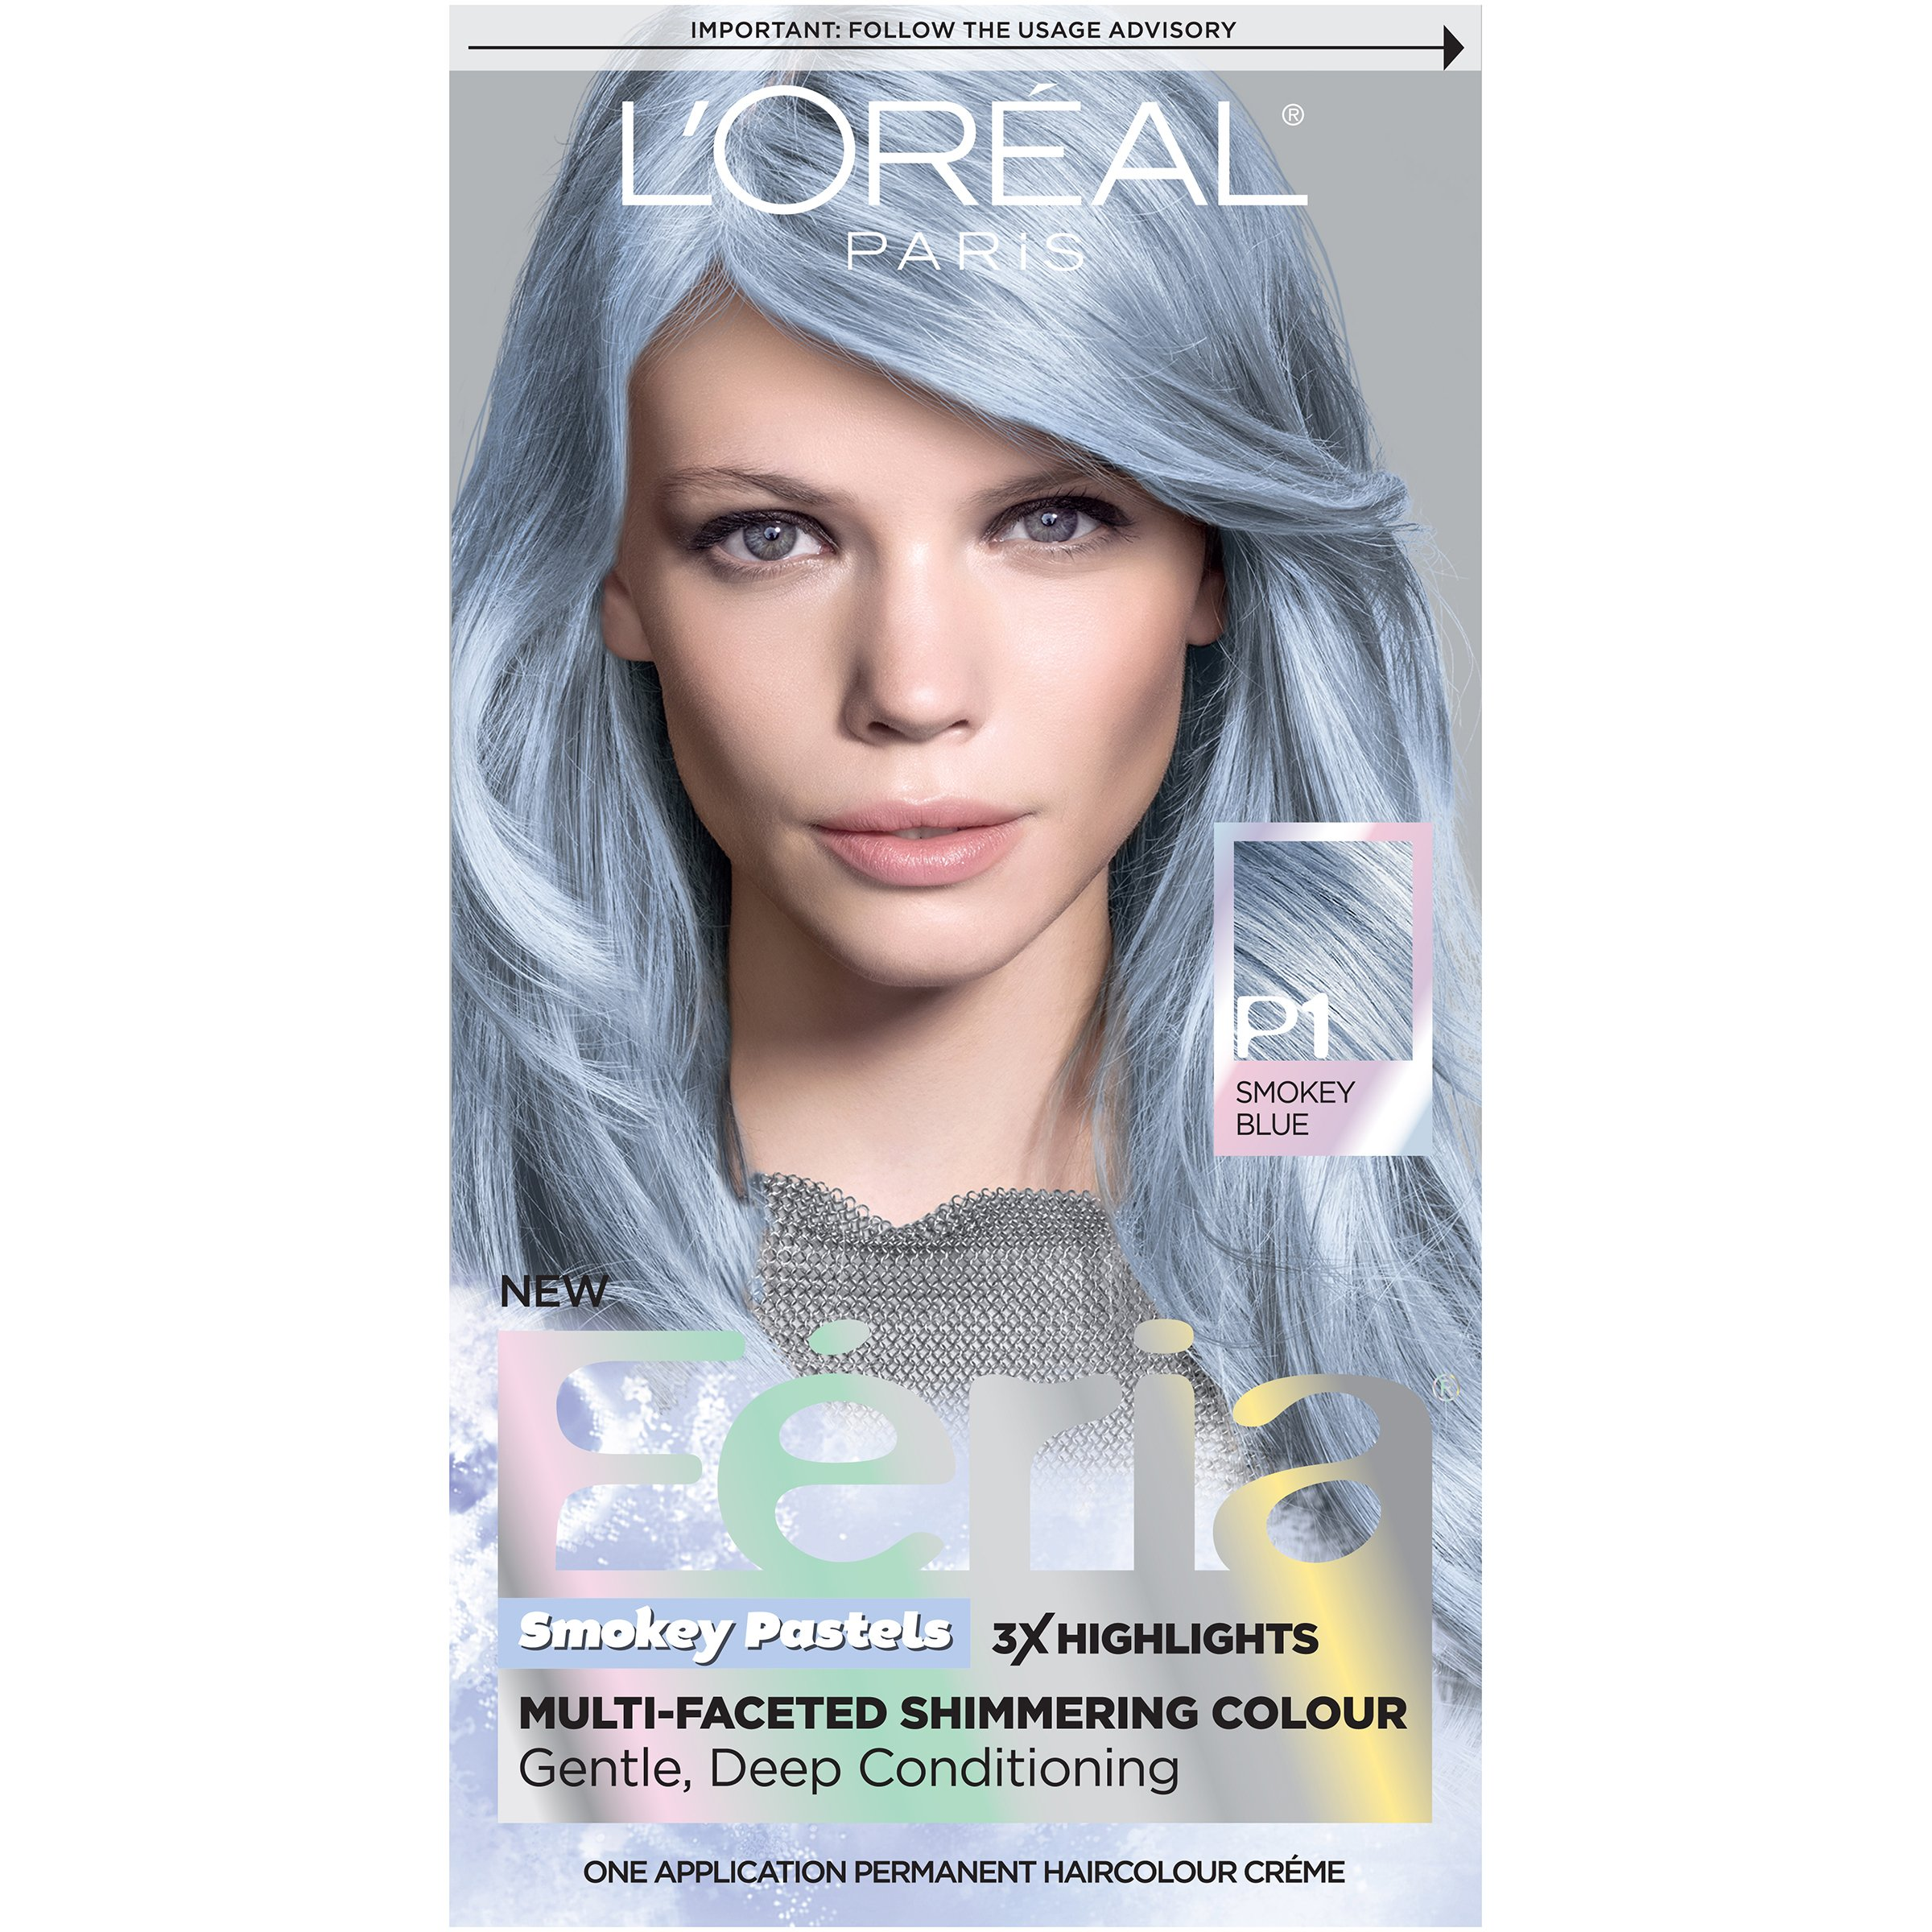 L'Oreal Paris Feria Multi-Faceted Shimmering Permanent Hair Color, Pastels Hair Color, P1 Sapphire Smoke (Smokey Blue), Pack of 1, Hair Dye